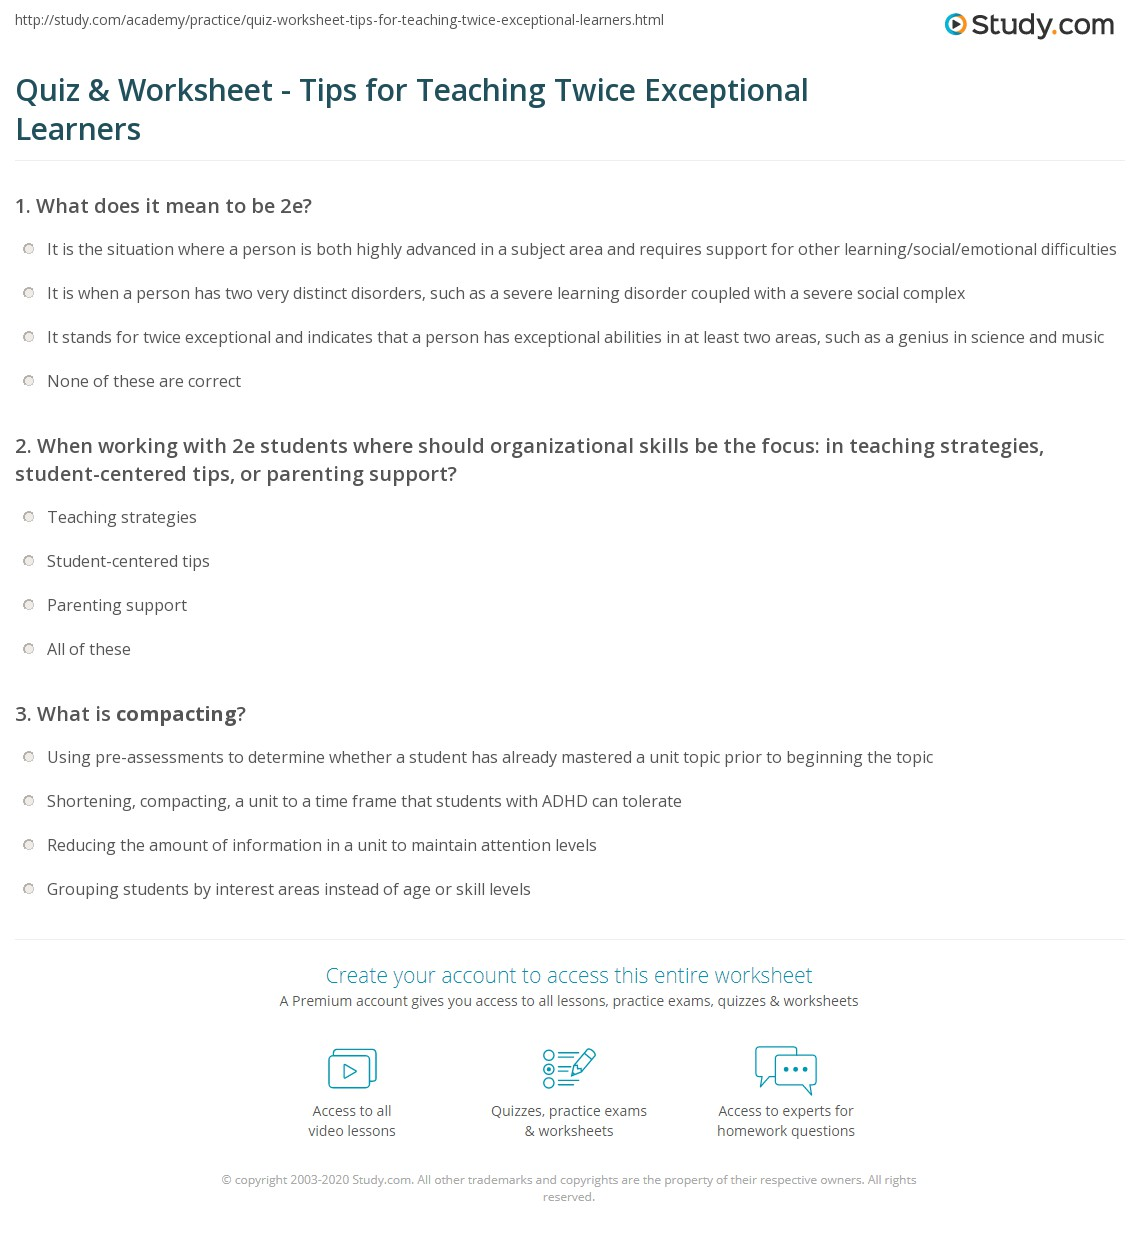 quiz worksheet tips for teaching twice exceptional learners when working 2e students where should organizational skills be the focus in teaching strategies student centered tips or parenting support